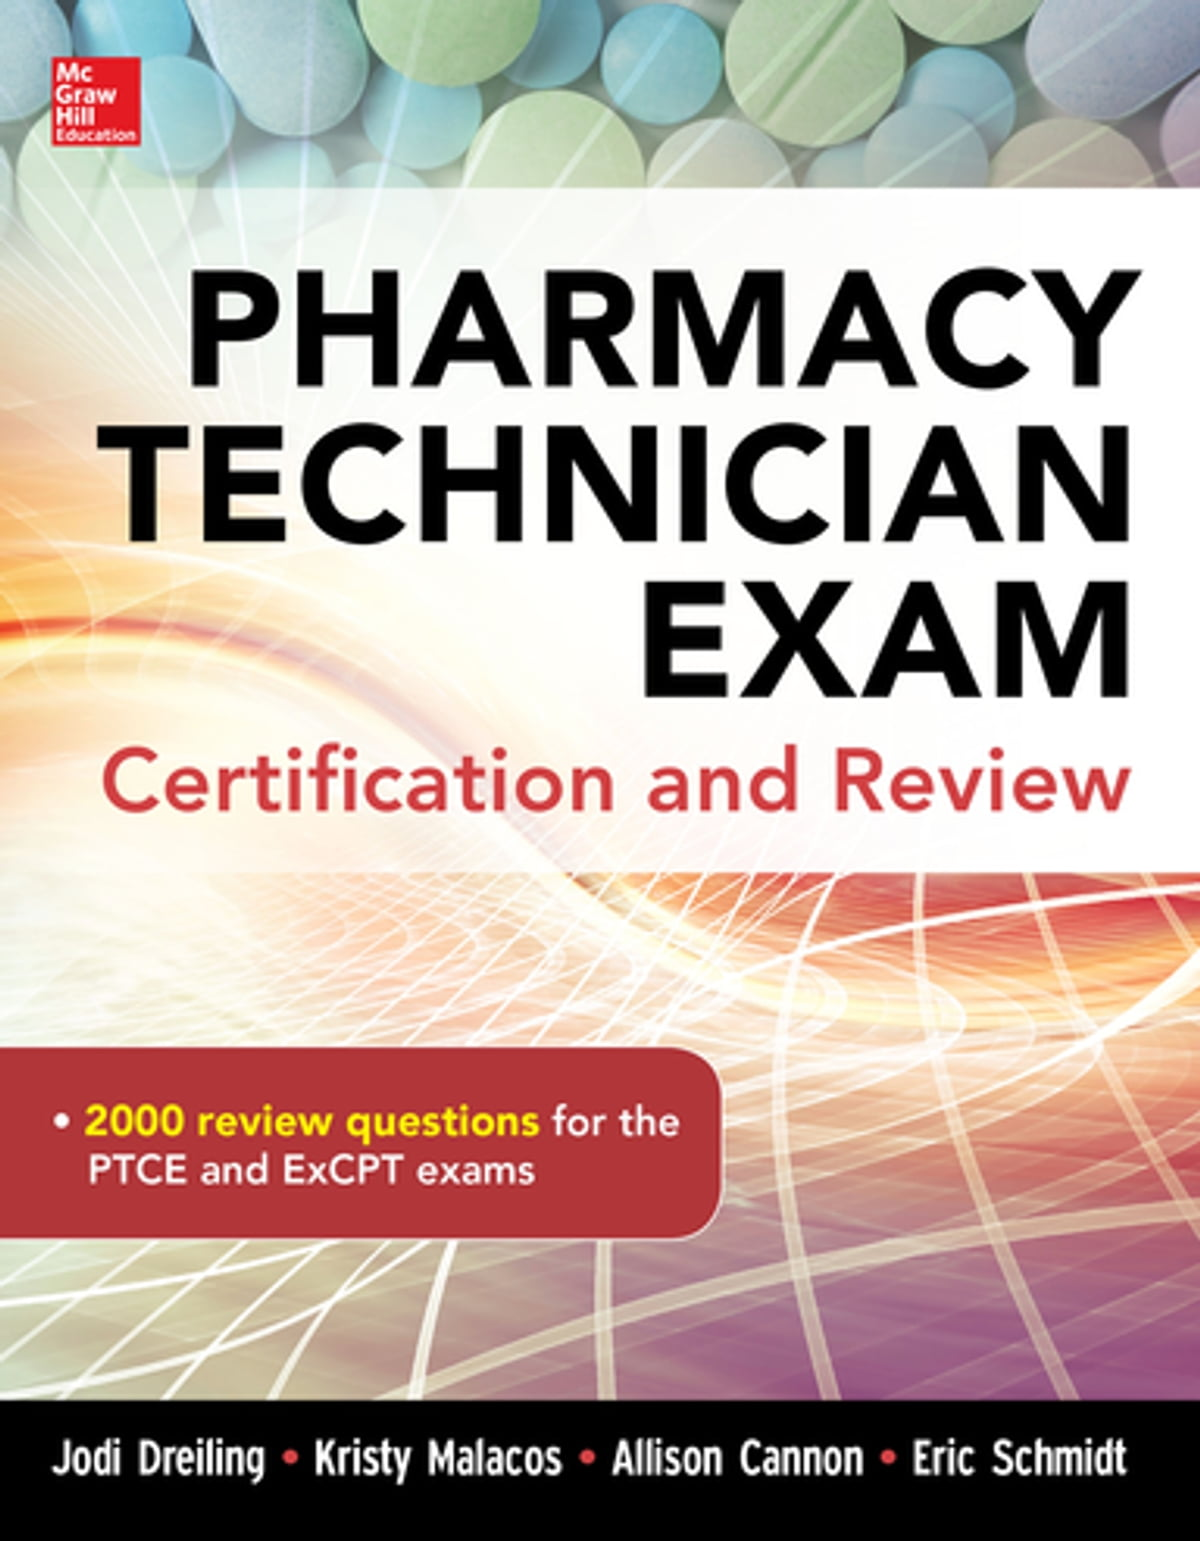 Pharmacy Tech Exam Certification And Review Ebook By Jodi Dreiling